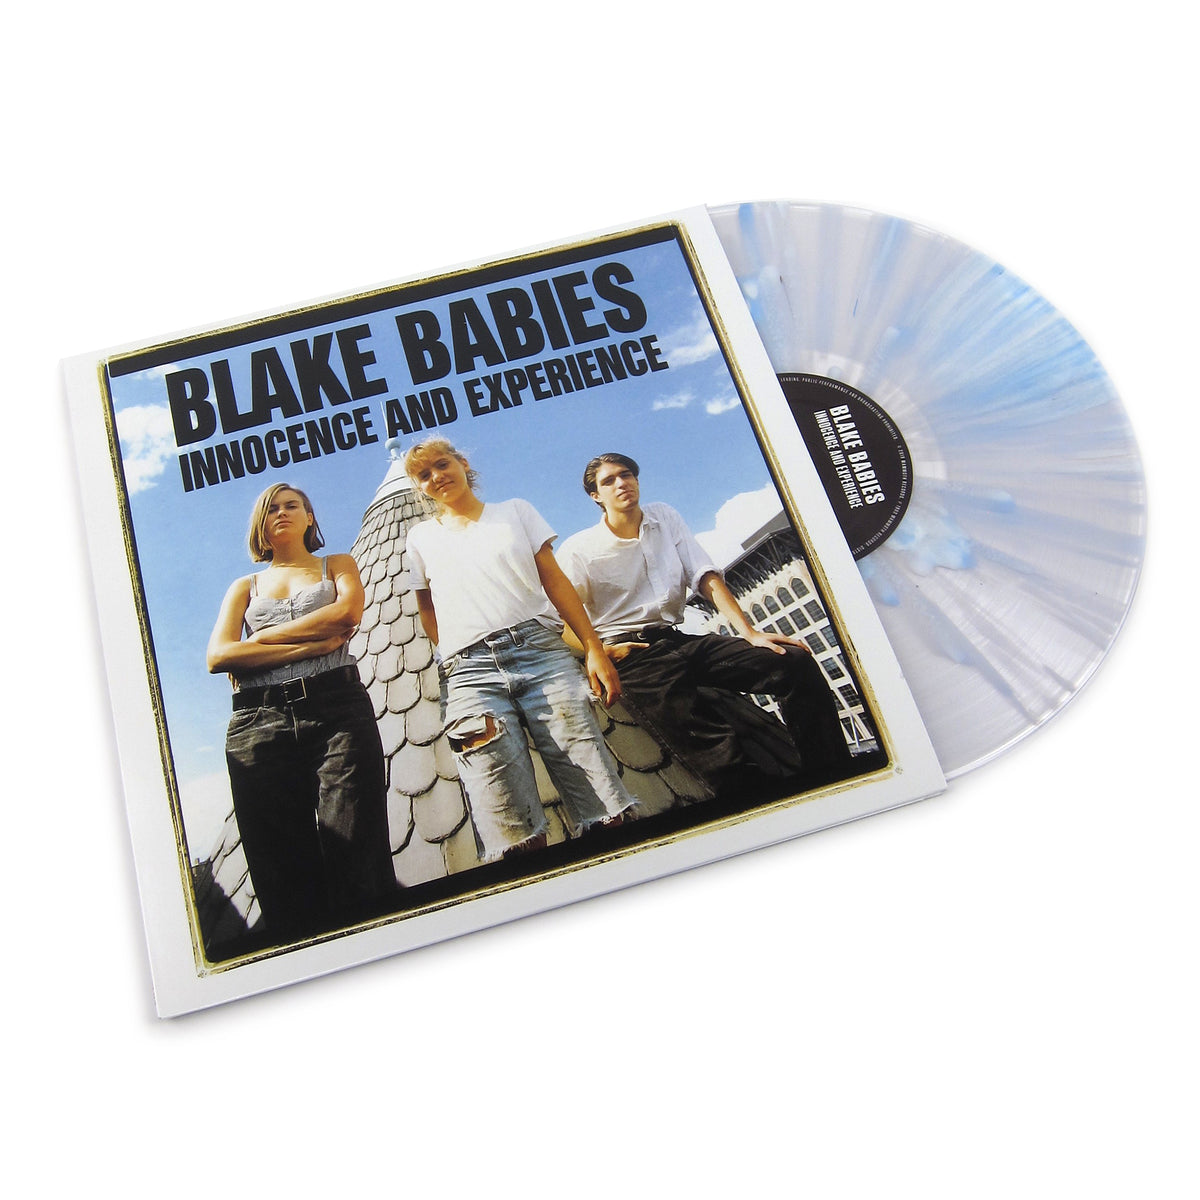 The Blake Babies: Innocence And Experience (Colored Vinyl) Vinyl LP